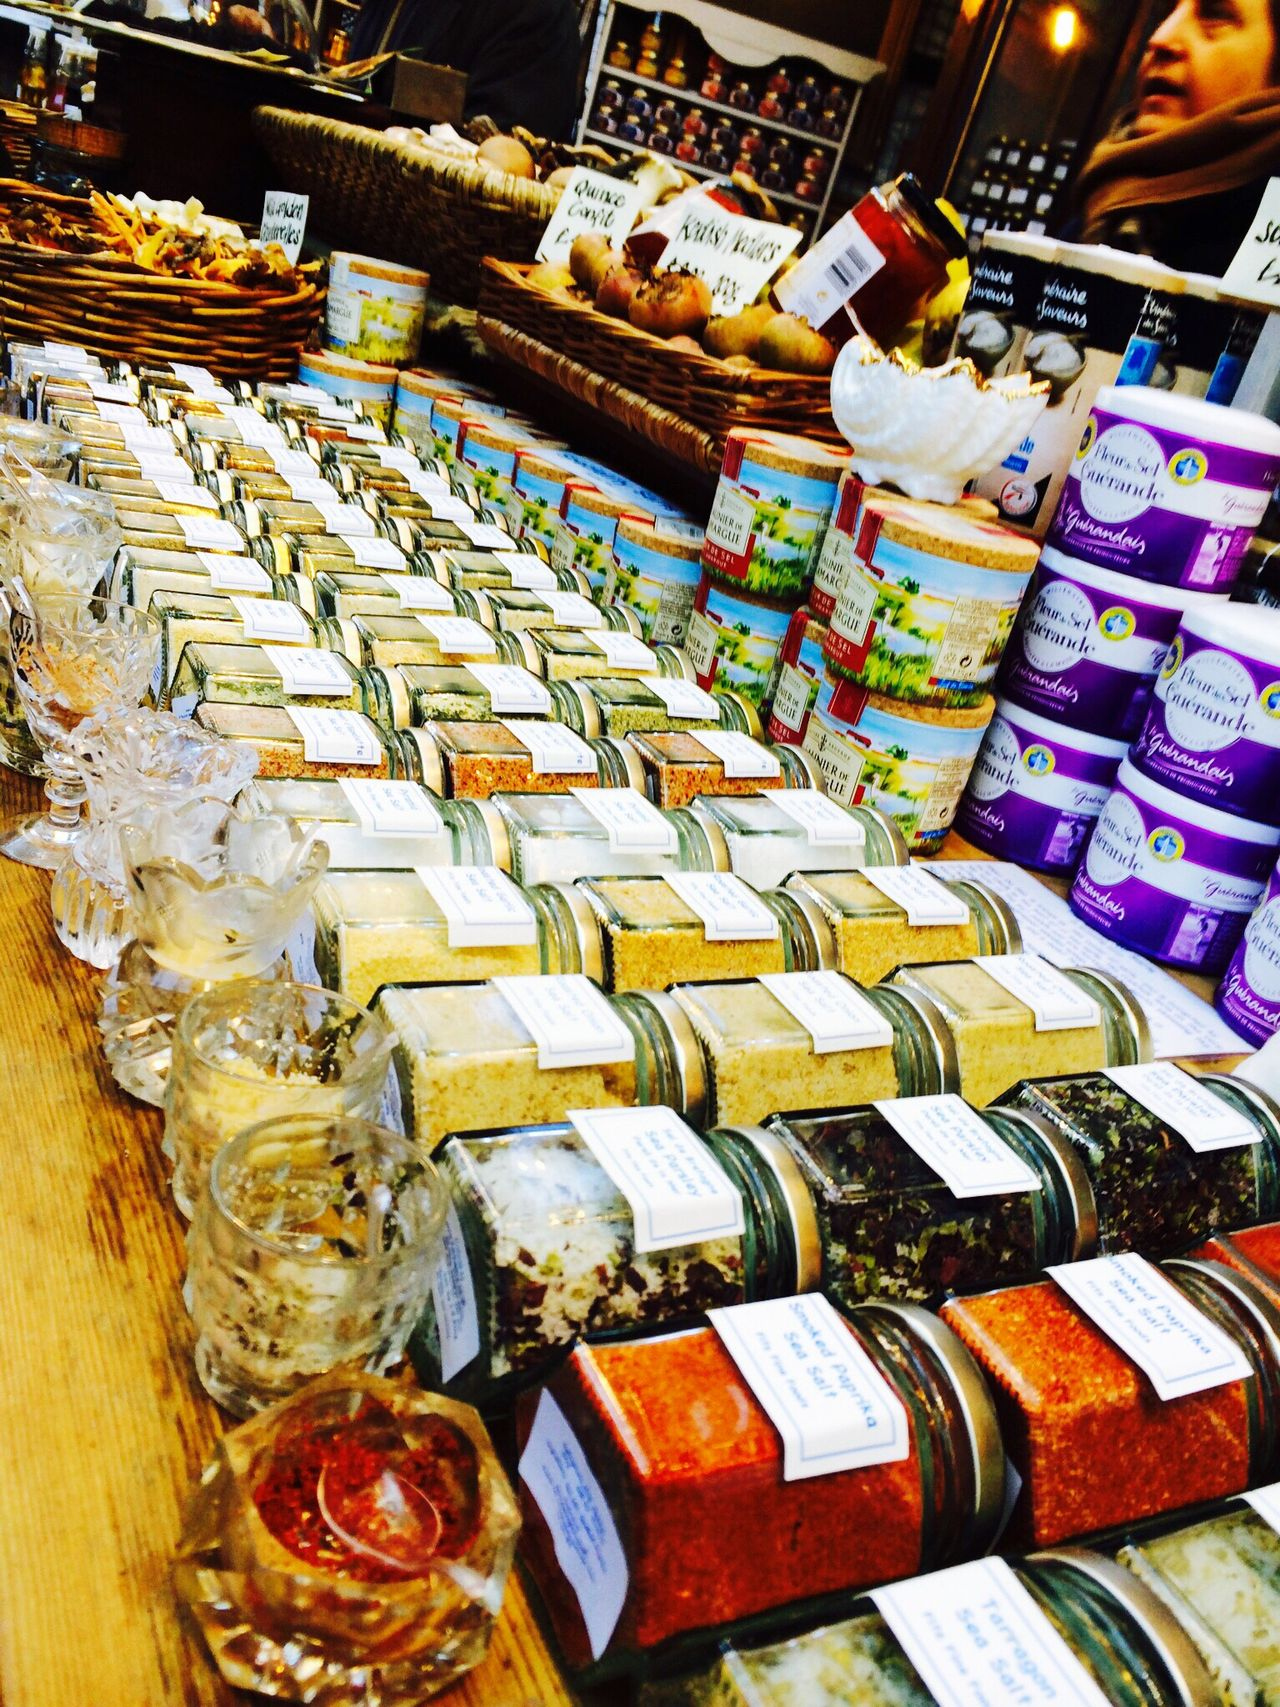 Beautifully Organized Food And Drink Food Retail  Choice Variation Abundance Arrangement Market Supermarket Large Group Of Objects Freshness No People Market Stall Indoors  Groceries Day Jars  Foodphotography